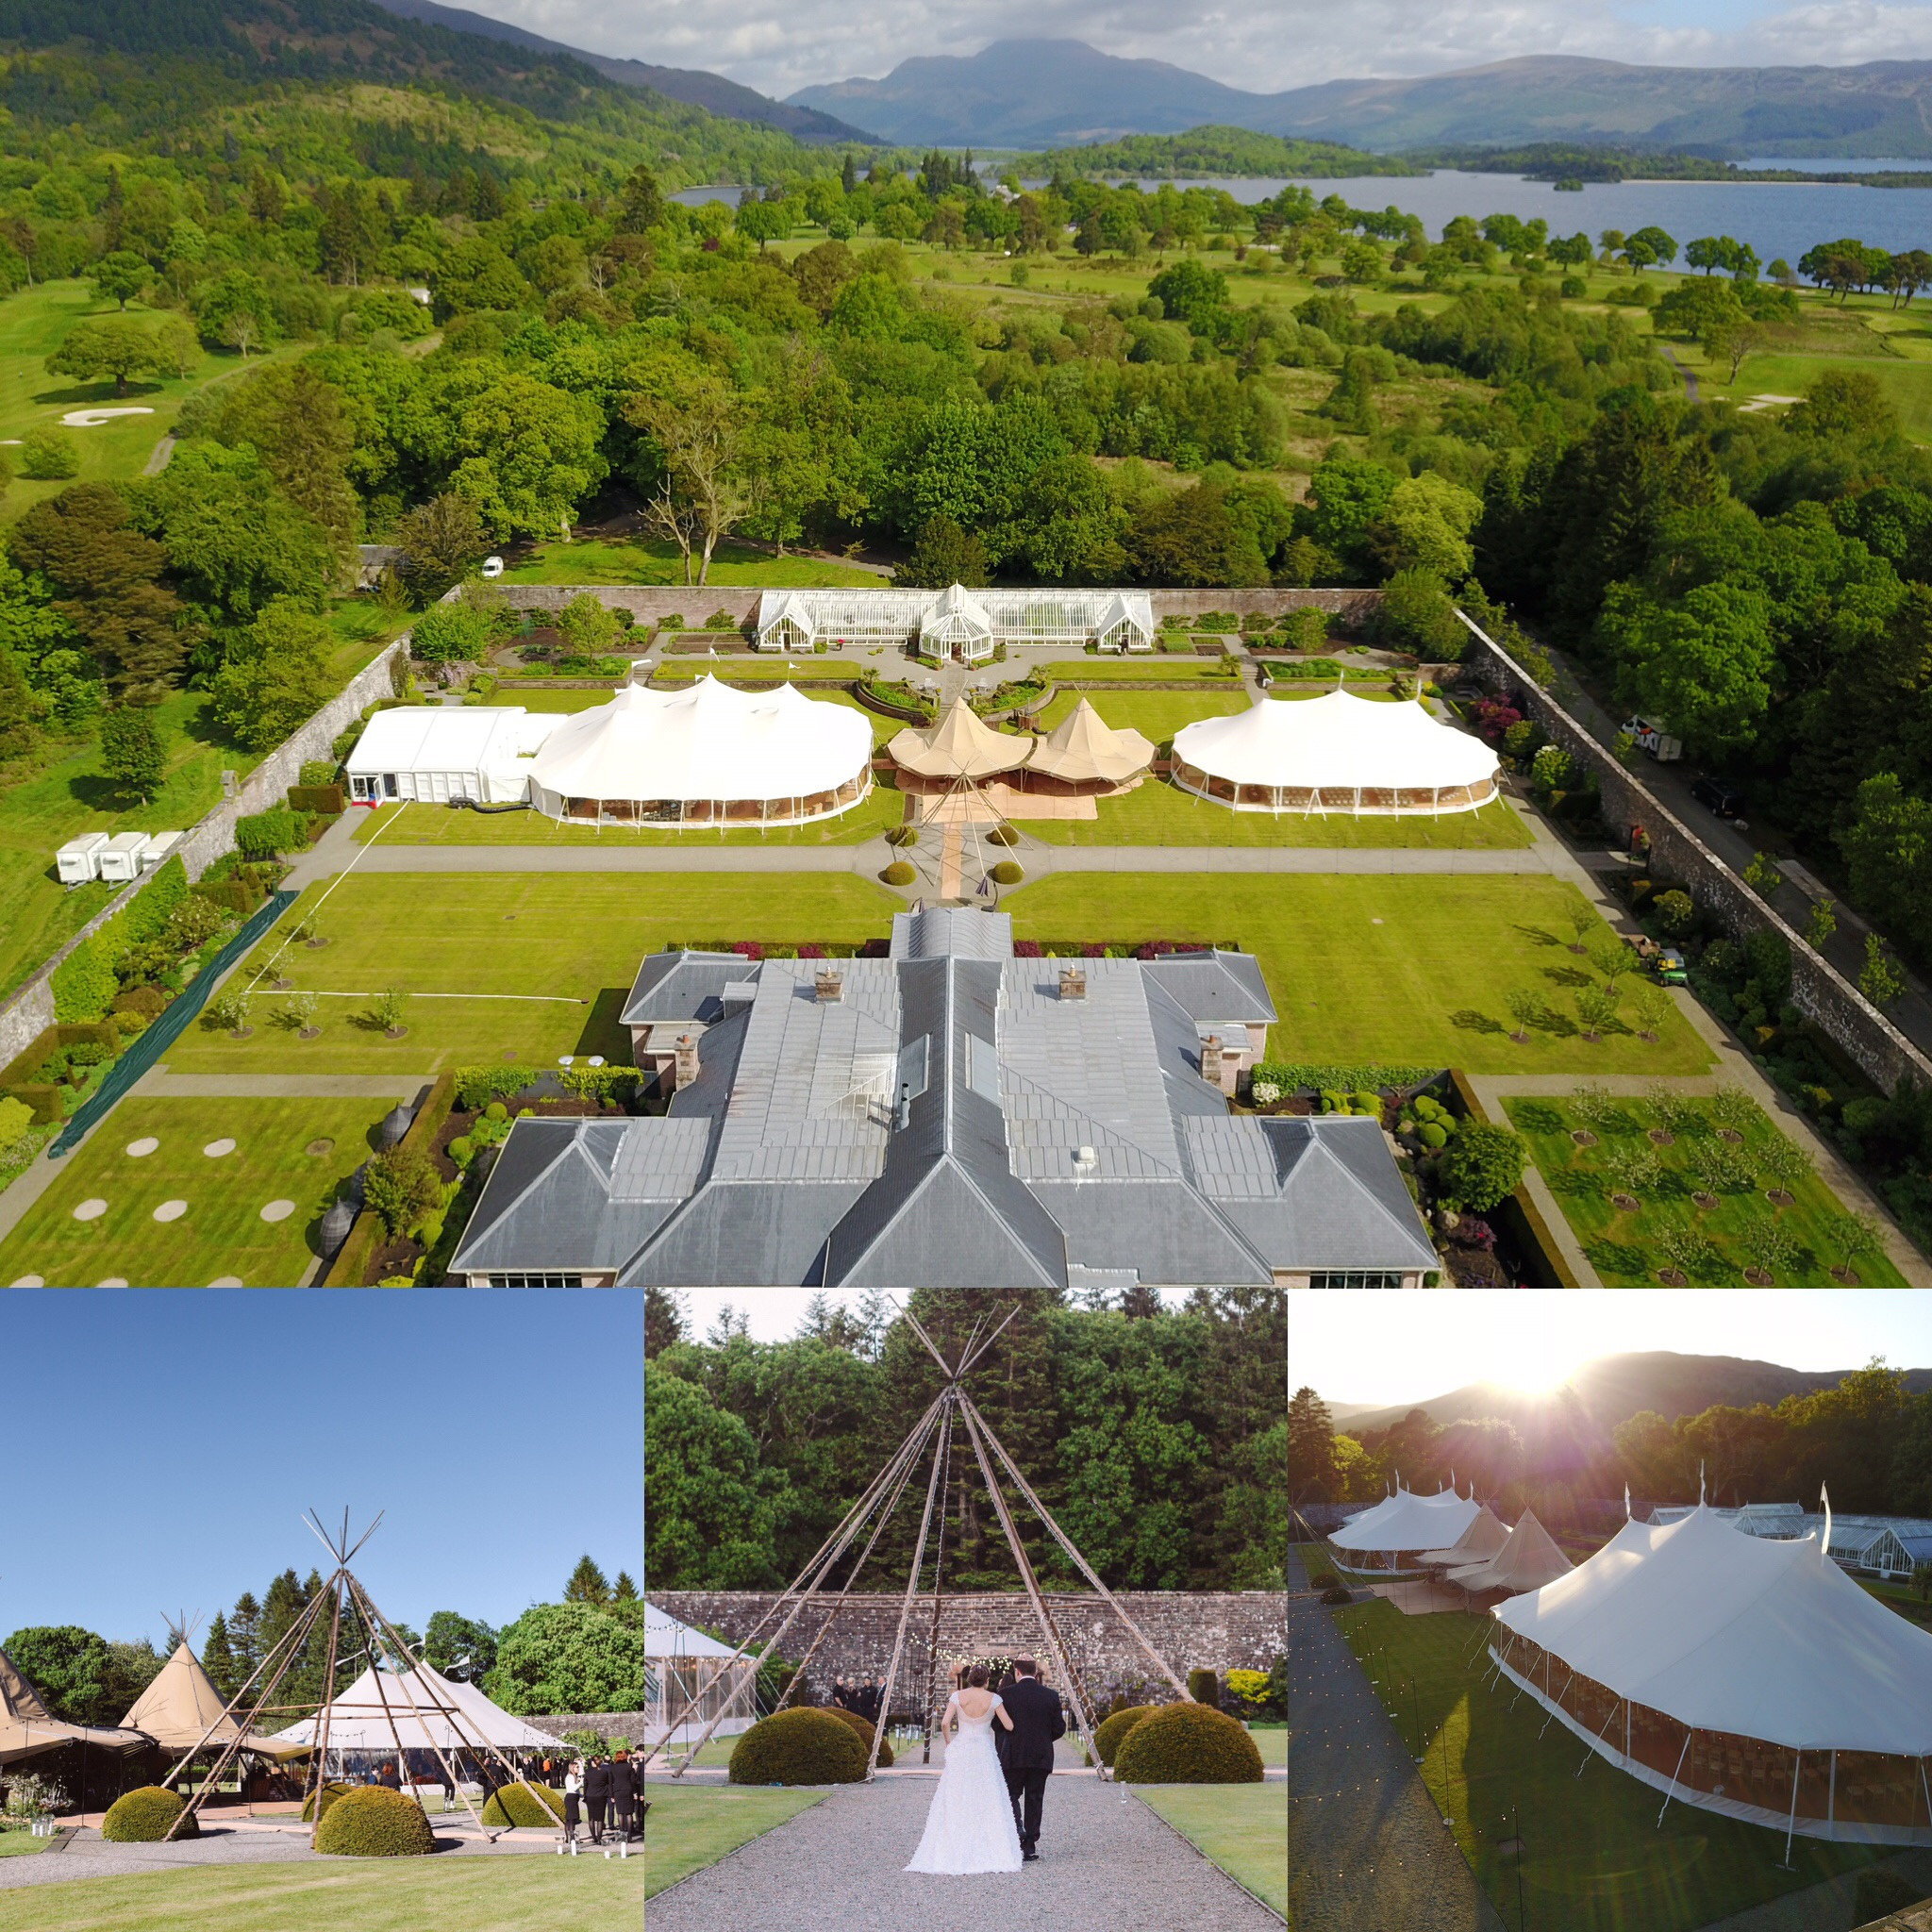 PapaKata Sperry Tent and Teepee Wedding in Loch Lomond Scotland